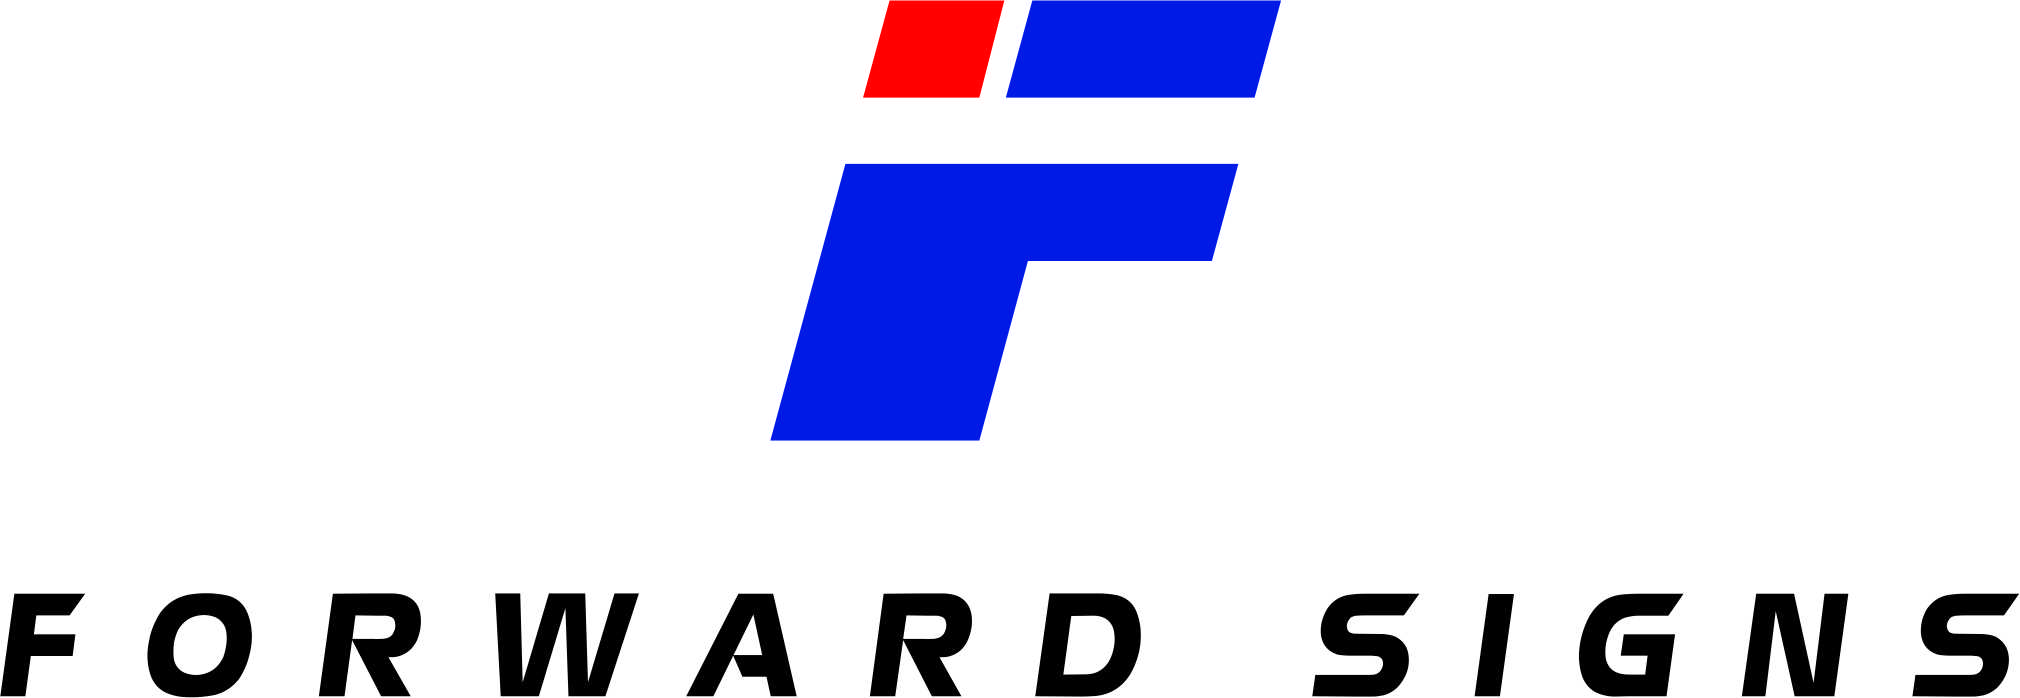 Forward Sign